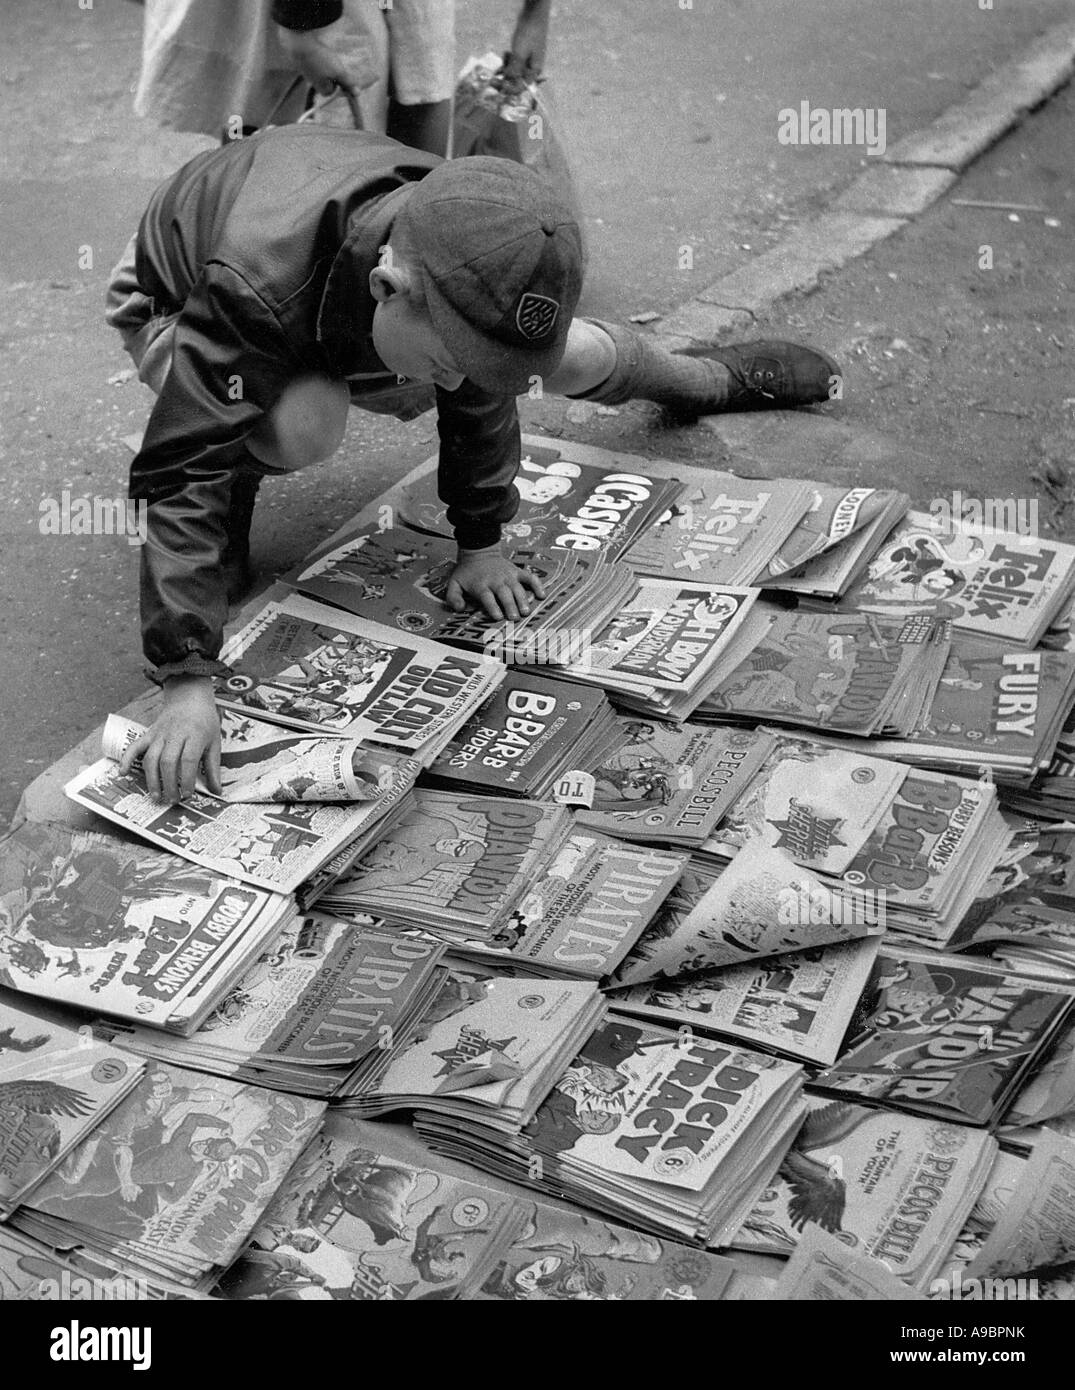 LONDON BOY WITH COMICS about 1950 - Stock Image